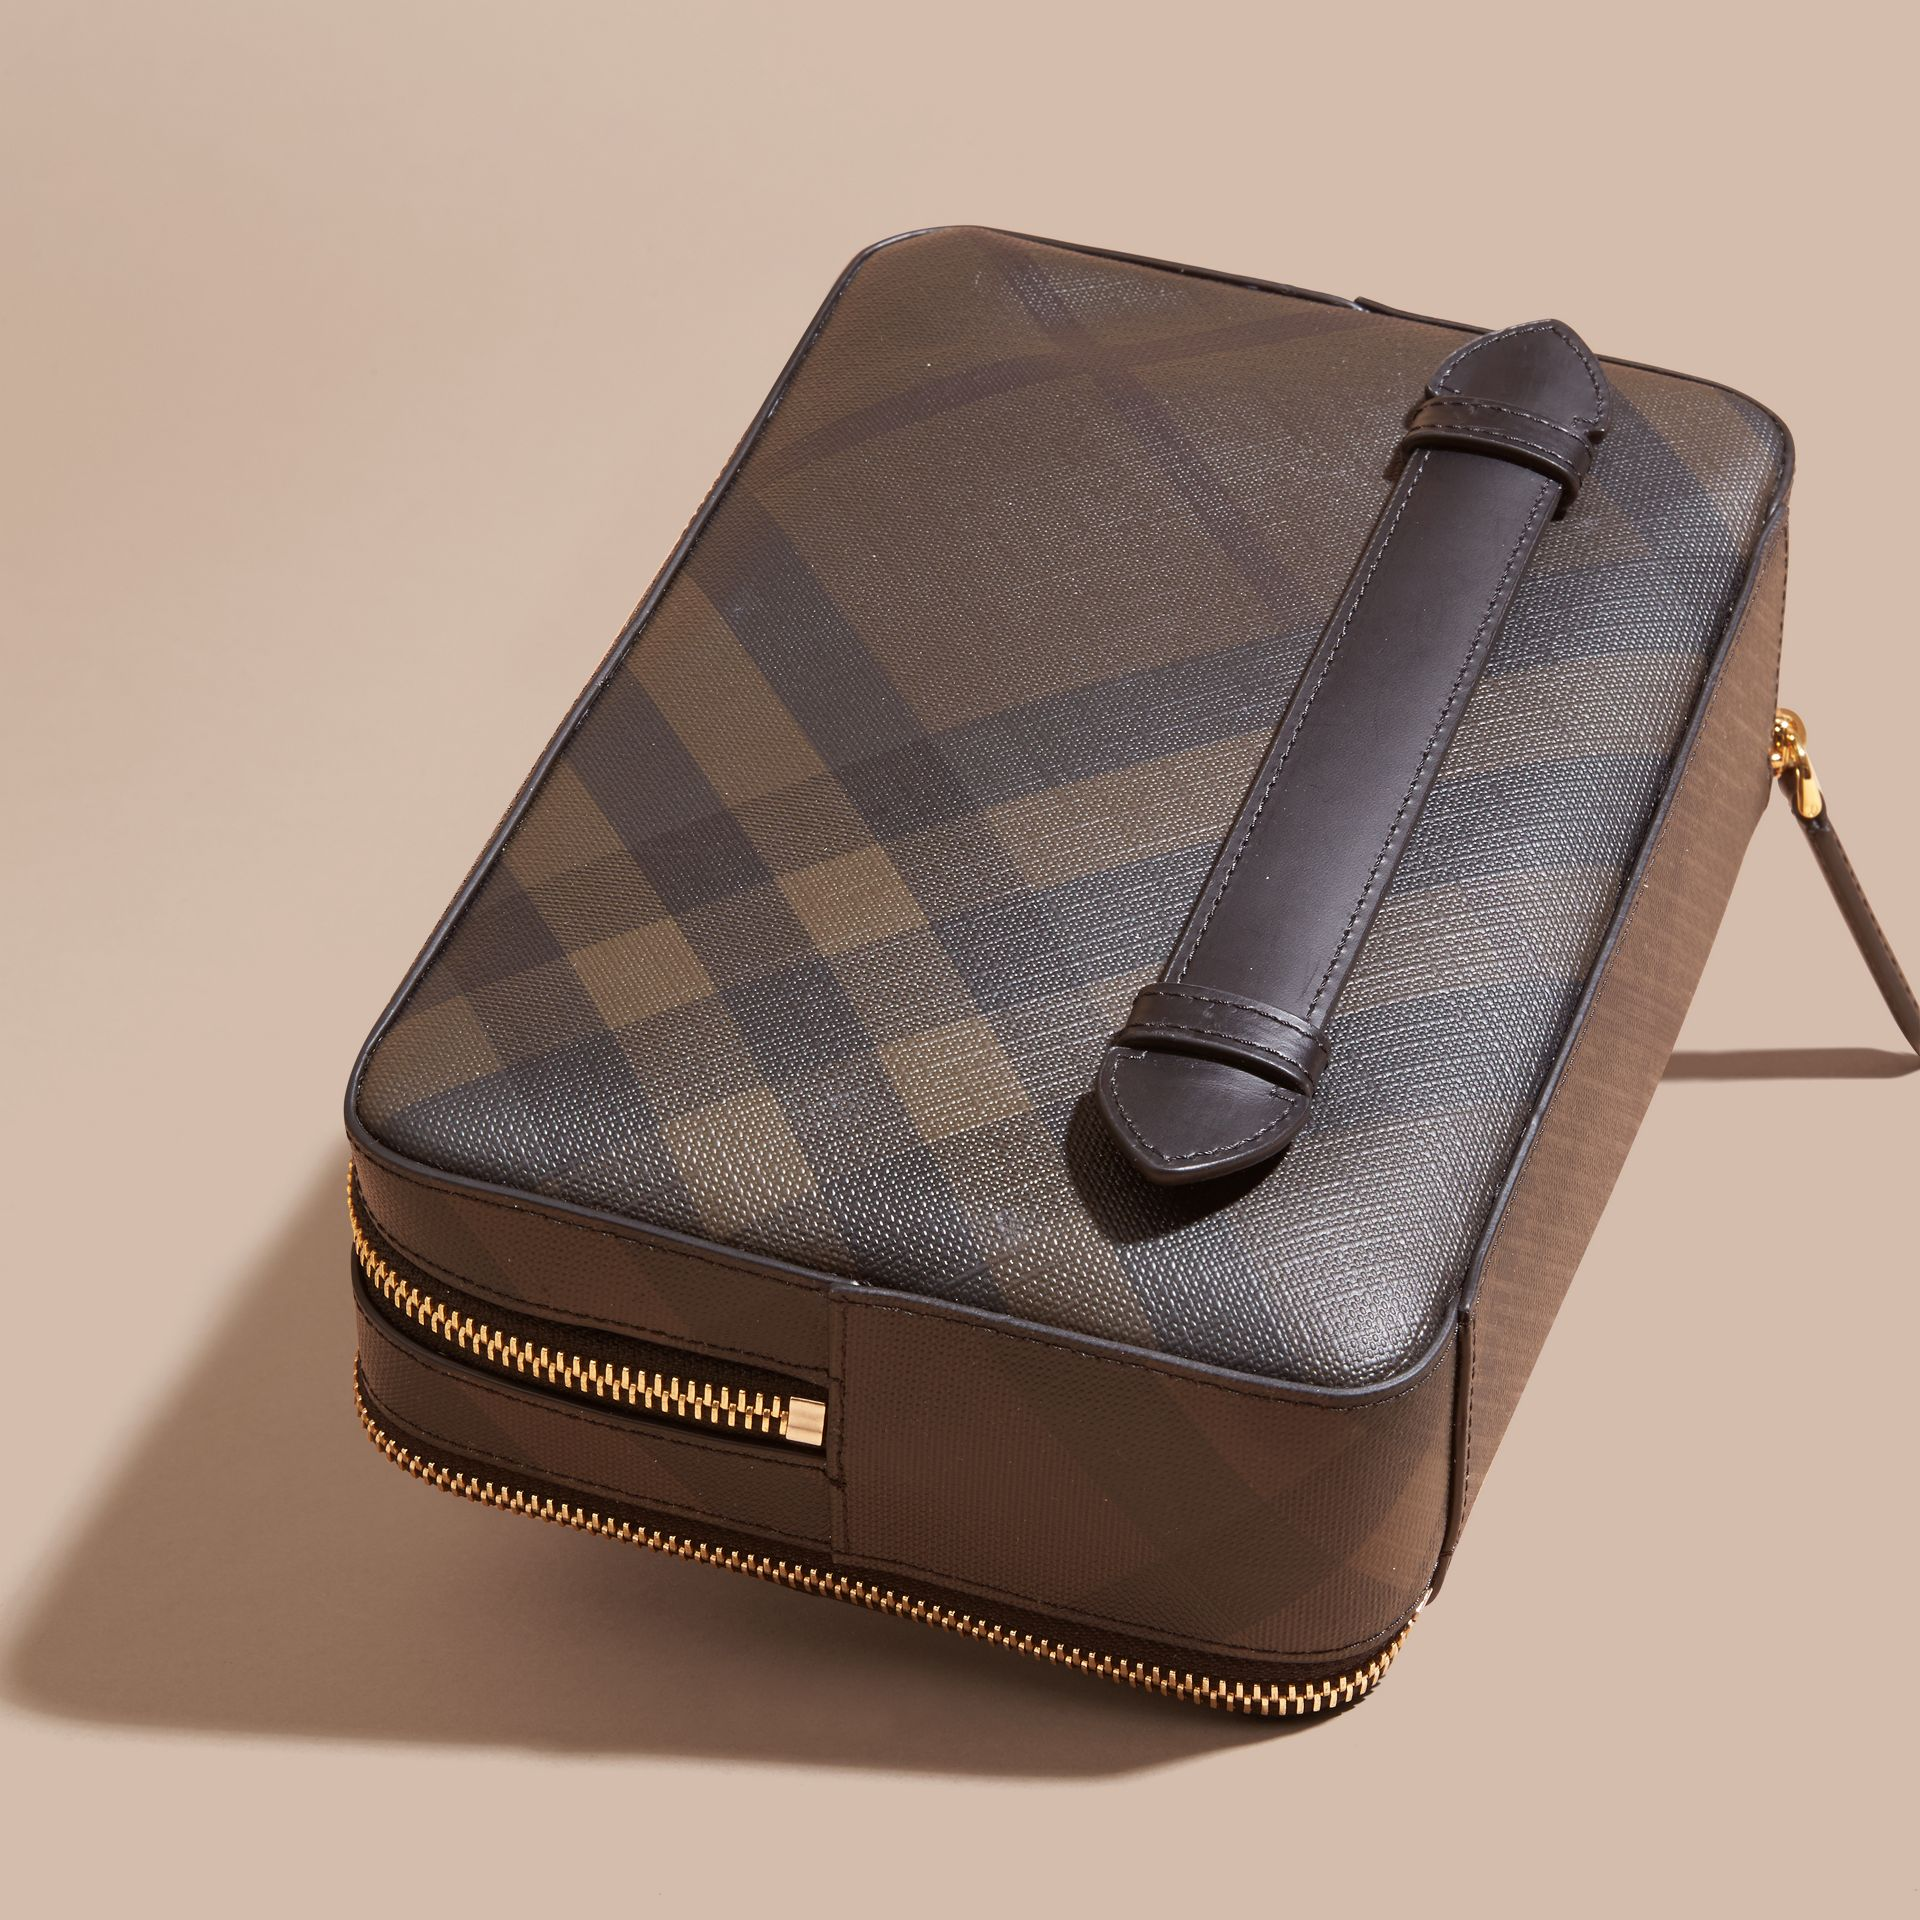 Leather-trimmed London Check Pouch in Chocolate/black - Men | Burberry Canada - gallery image 3